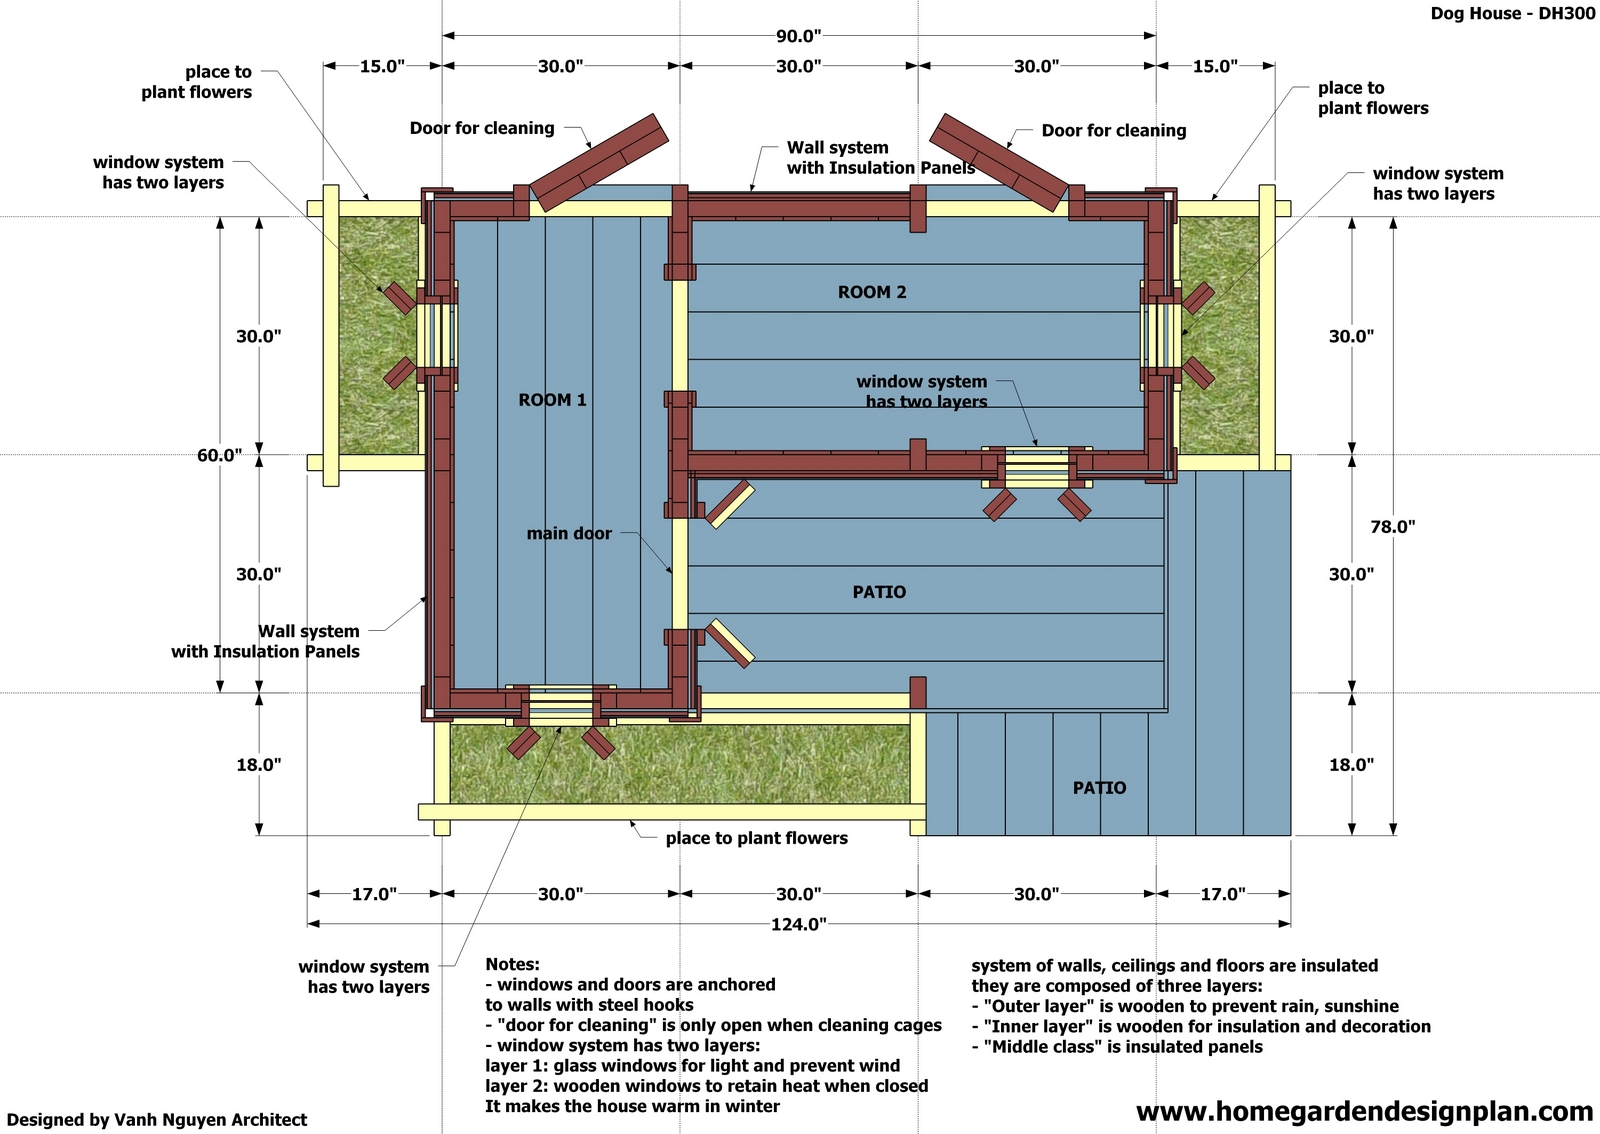 Free Easy Large Dog House Plans